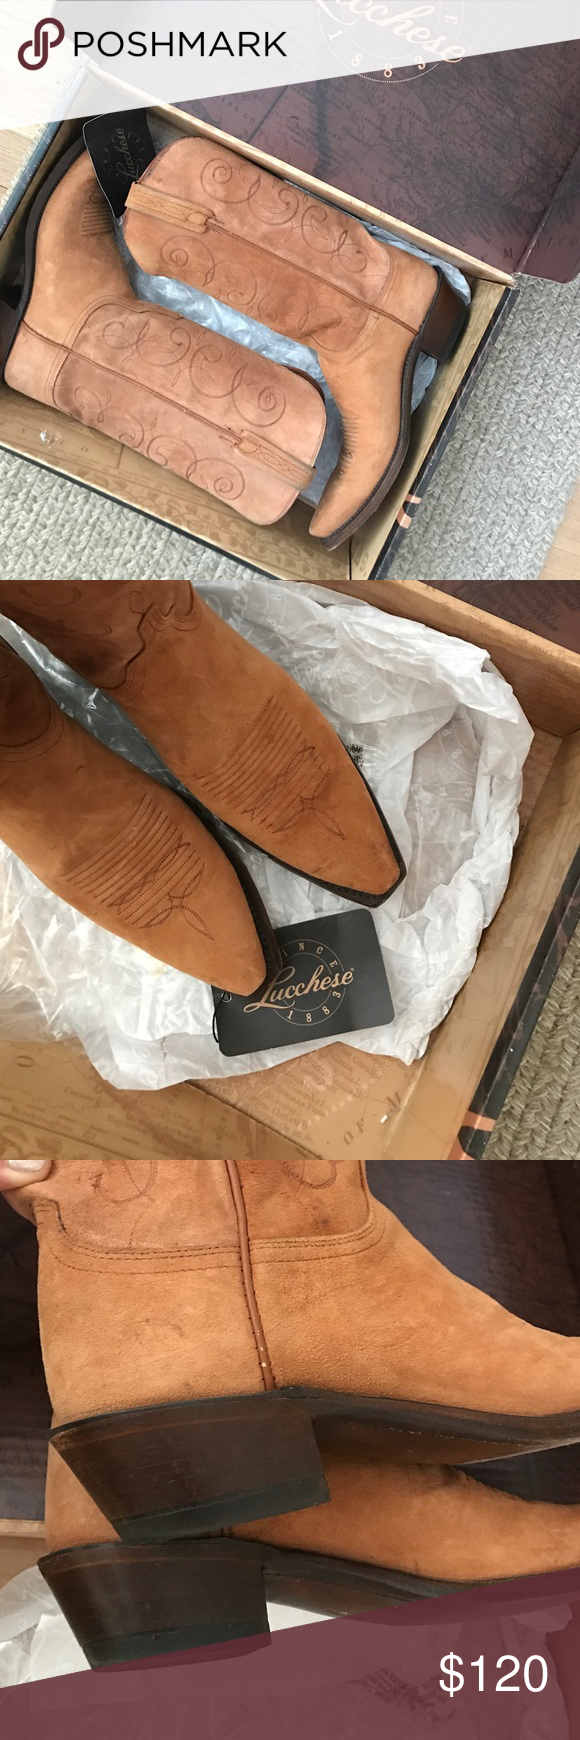 Lucchese Classics women's boots - Tan Size 9B. Fits true to size. Worn about 4 times. Sueded leather - tan/ginger color. Original box and boot inserts. Lucchese feel and quality. A bit of denim color along inside from wearing with dark jeans. Lucchese Shoes Heeled Boots